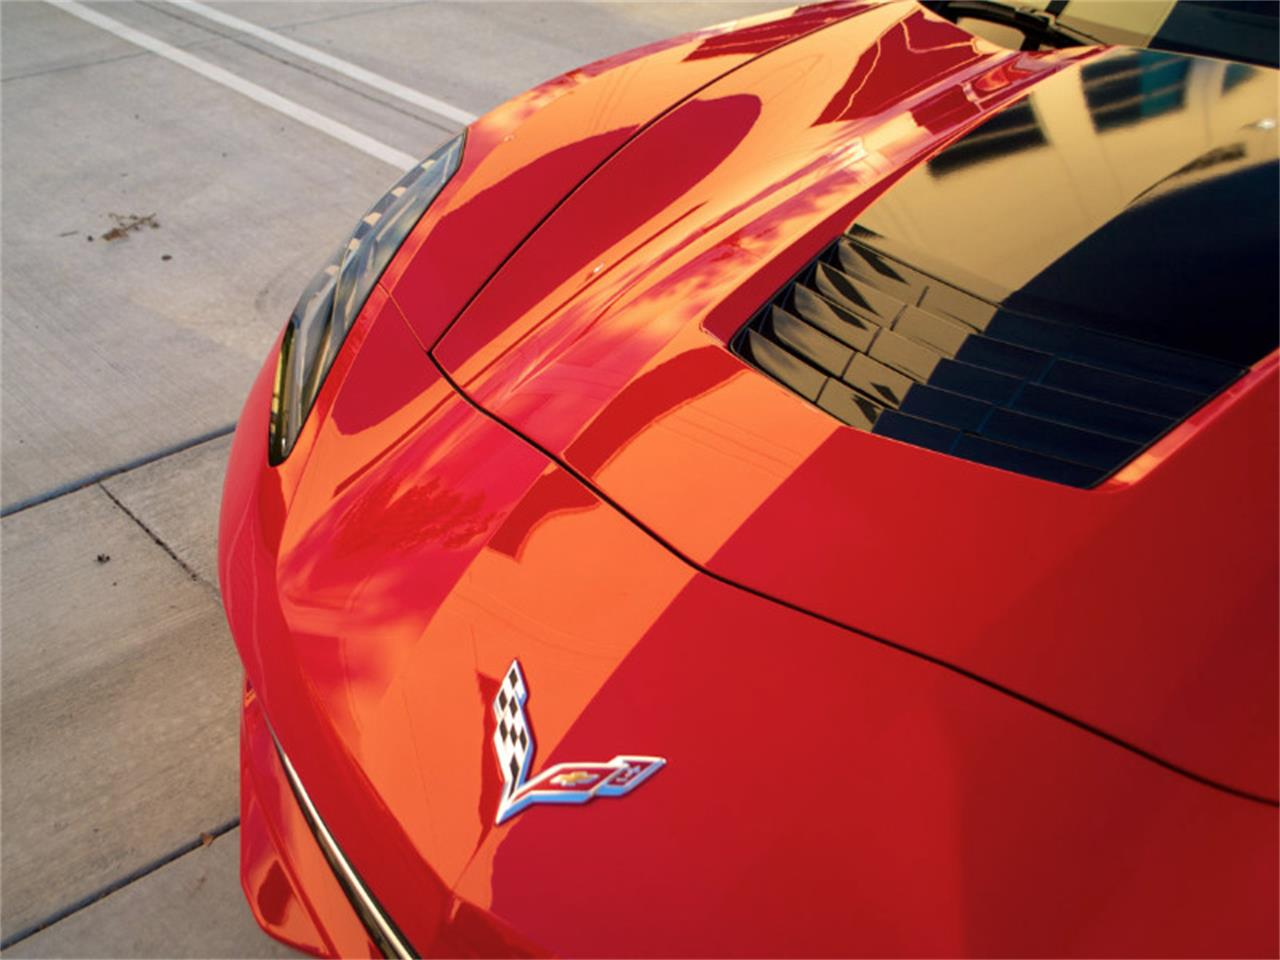 2015 Chevrolet Corvette (CC-1321987) for sale in Anaheim, California